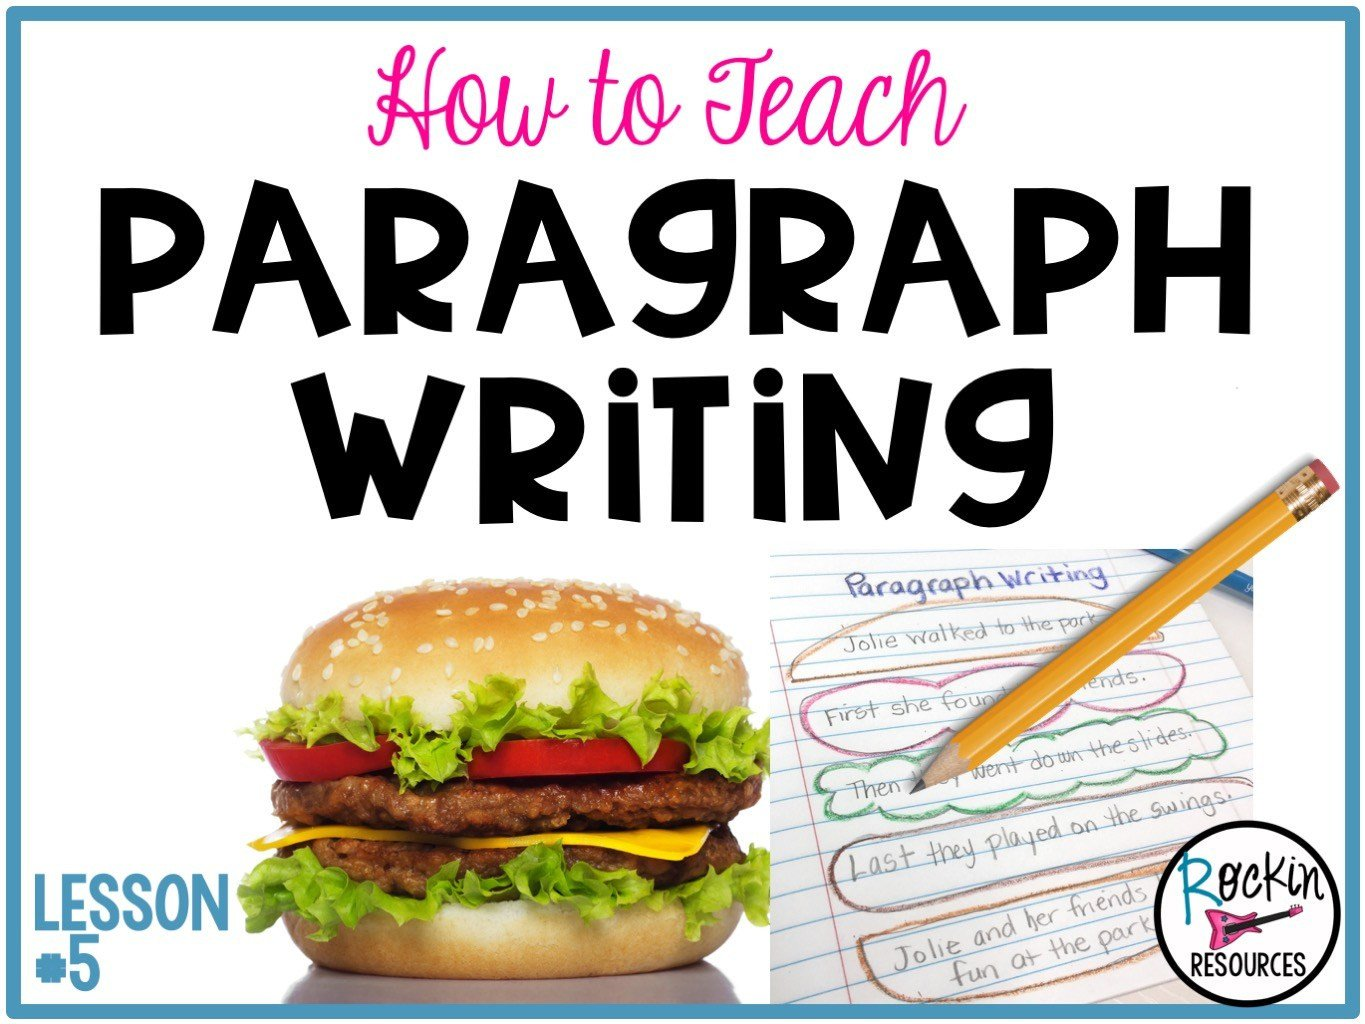 Paragraph Writing 5